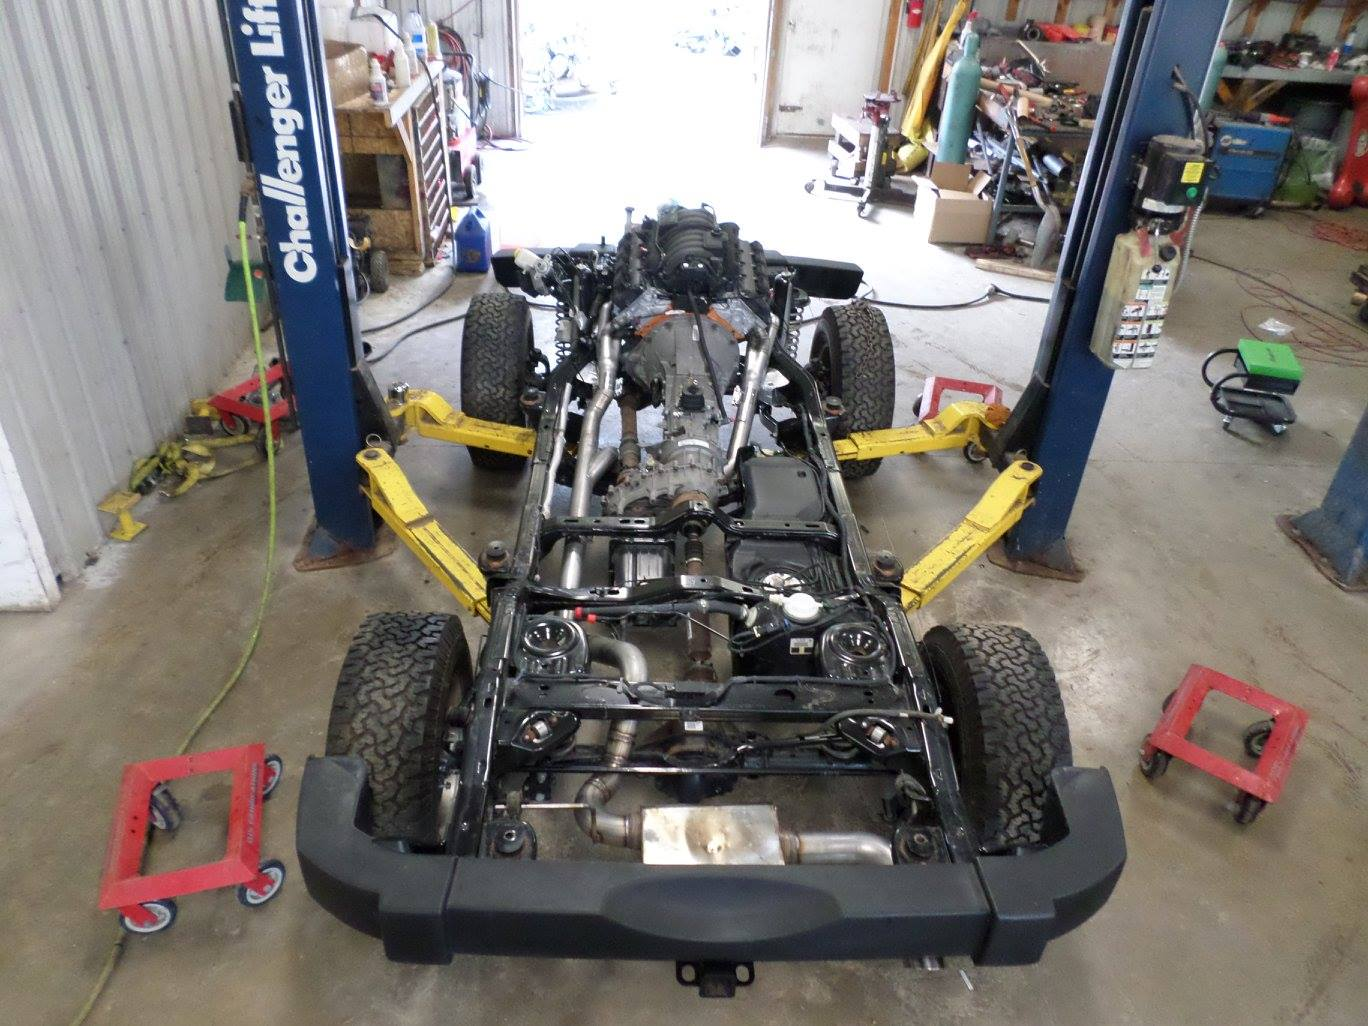 Jeep Wrangler Rubicon With A L Hellcat V besides Maxresdefault also D Jeep Yj L Swap  pleted Wrangler Engine as well Jeep Wrangler Rubicon With A L Hemi V additionally Maxresdefault. on jeep wrangler v8 engine swap